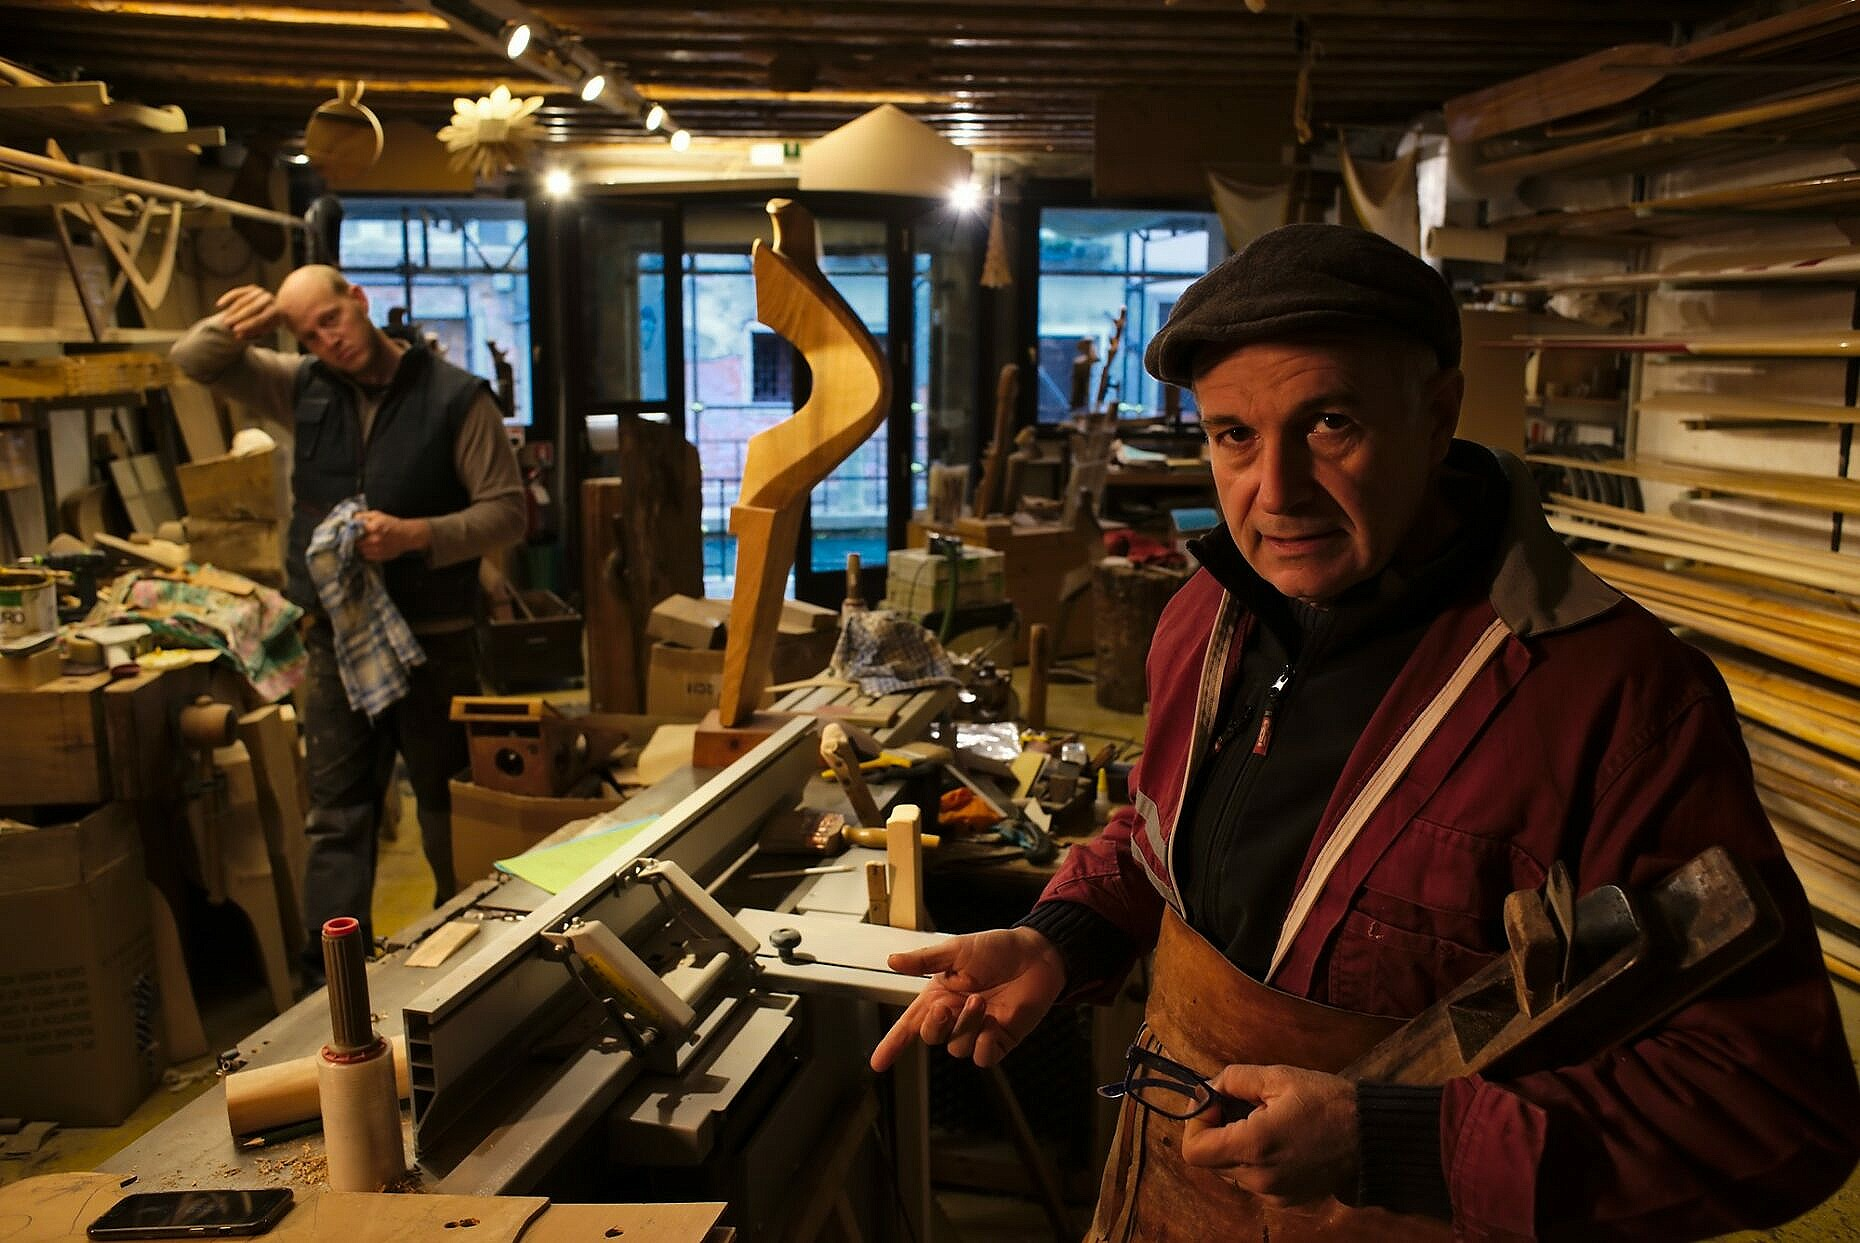 Oarmake (remer) Savario Pastor chatting in his workshop during a break.